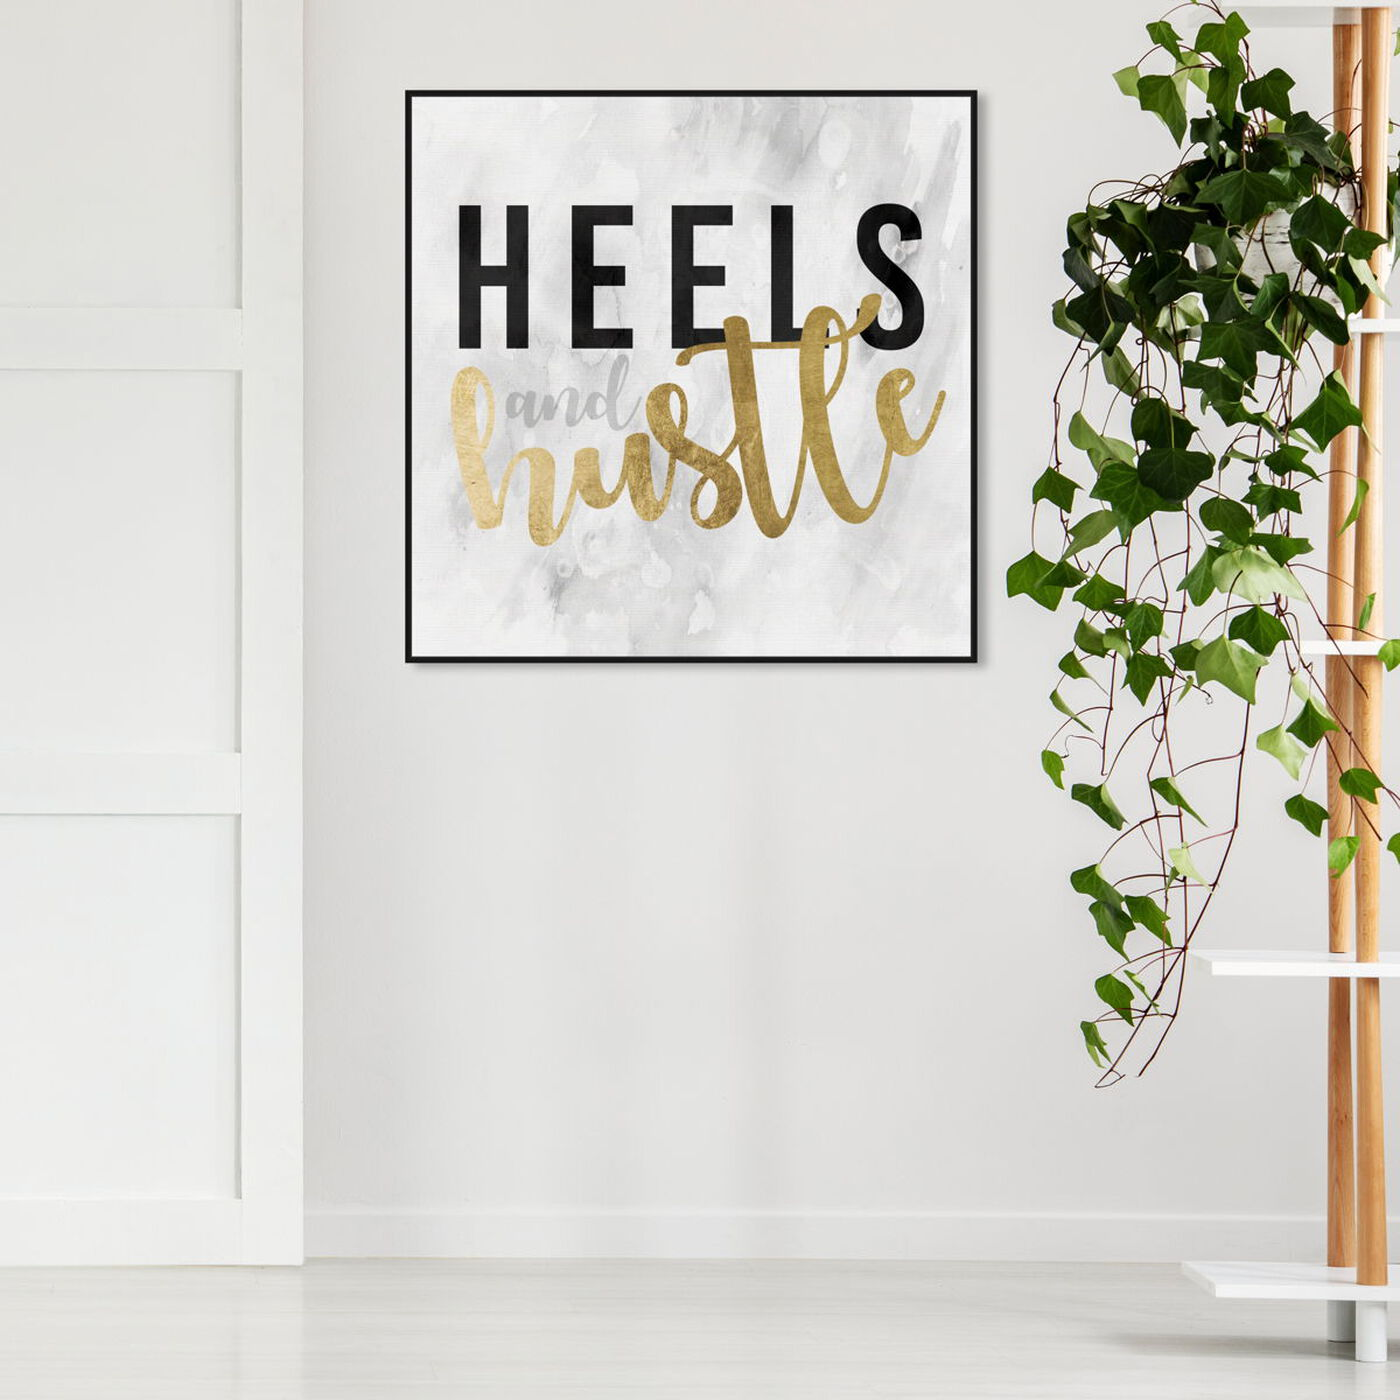 Hanging view of Heels and Hustle Gold featuring typography and quotes and fashion quotes and sayings art.